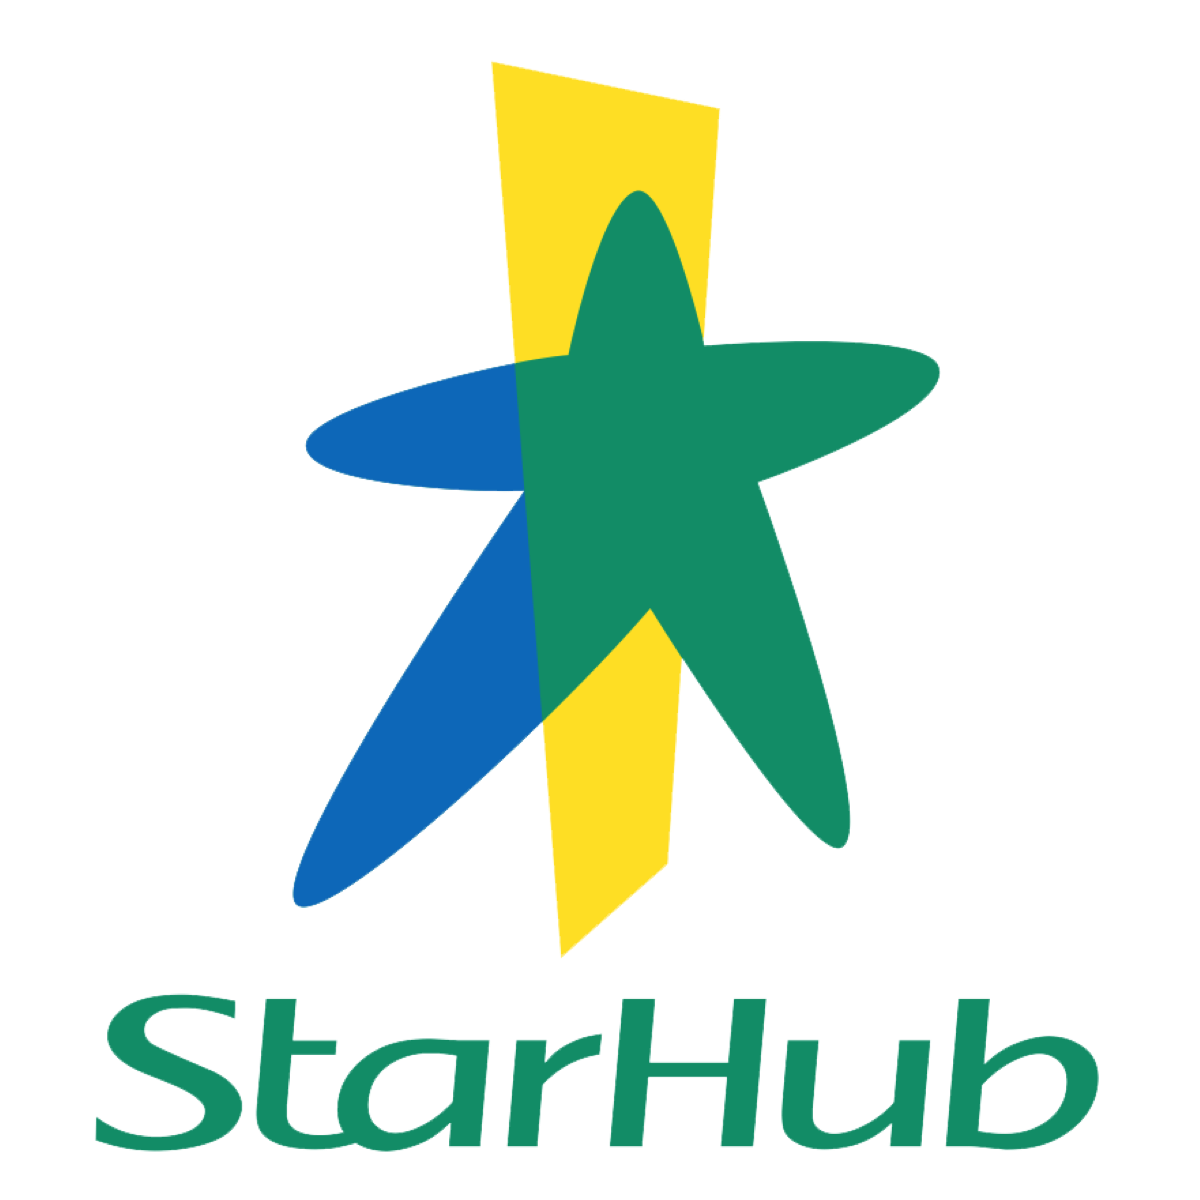 StarHub - Maybank Kim Eng Research 2018-08-23: Ceo Briefing Highlights